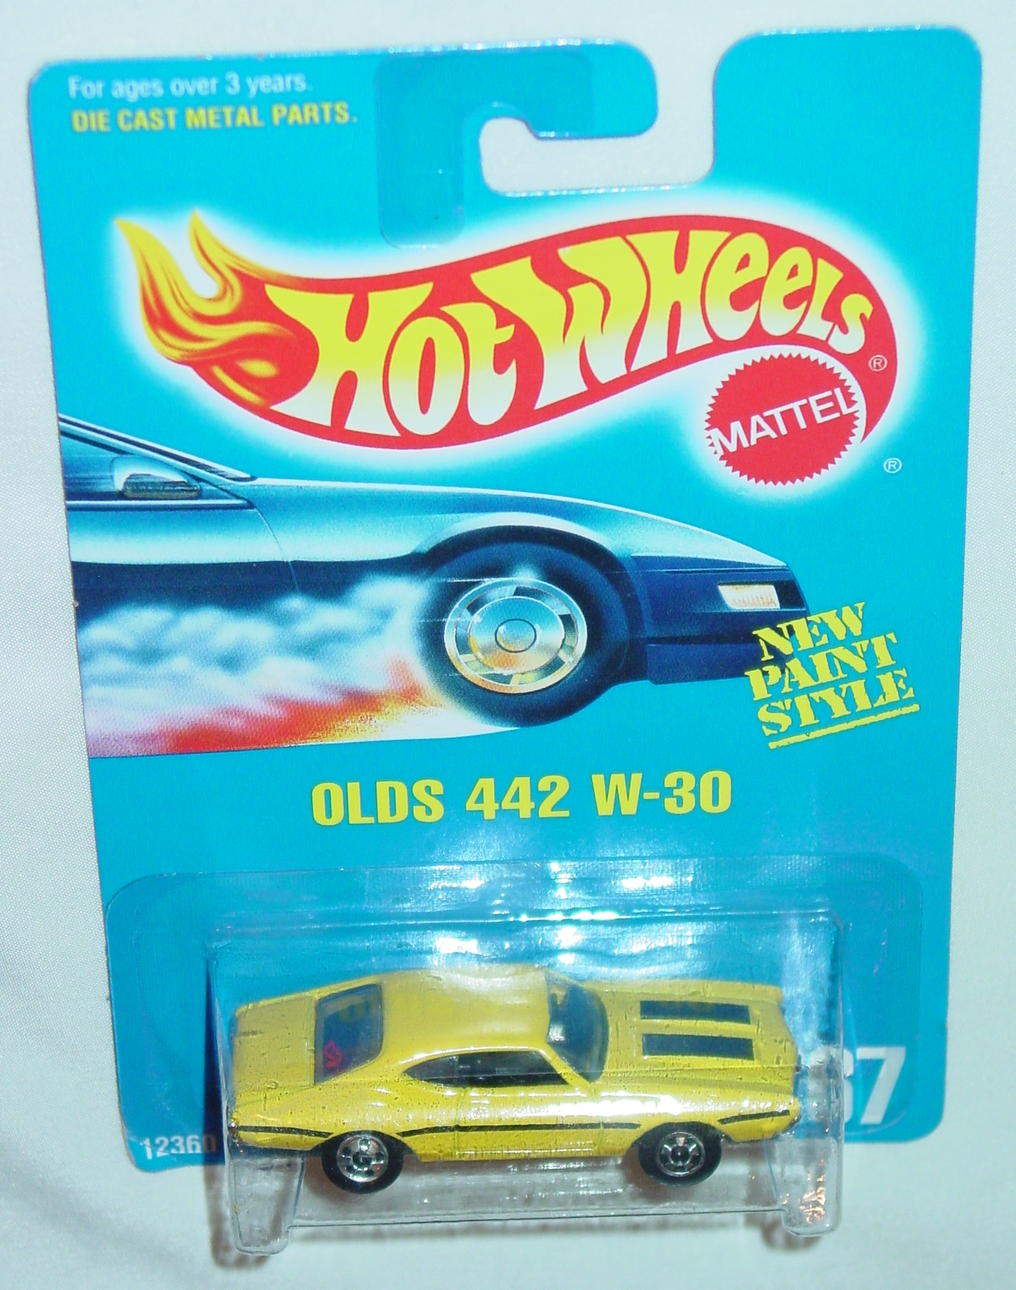 Blackwalls 12360 - 267 Olds 442 W-30 Yellow black wheels C9.5